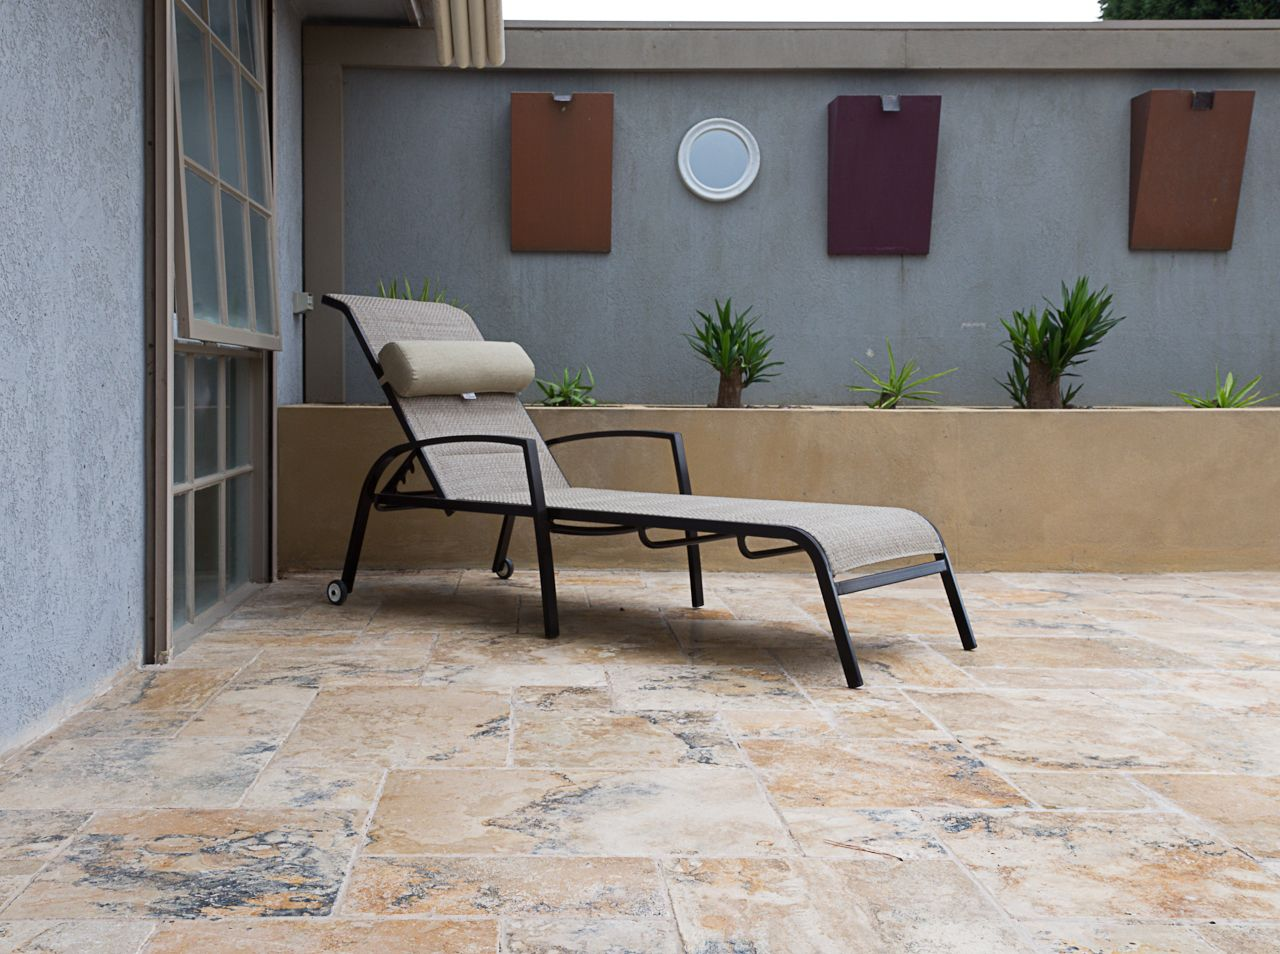 http decorstone com au wp content uploads 2013 01 travertine